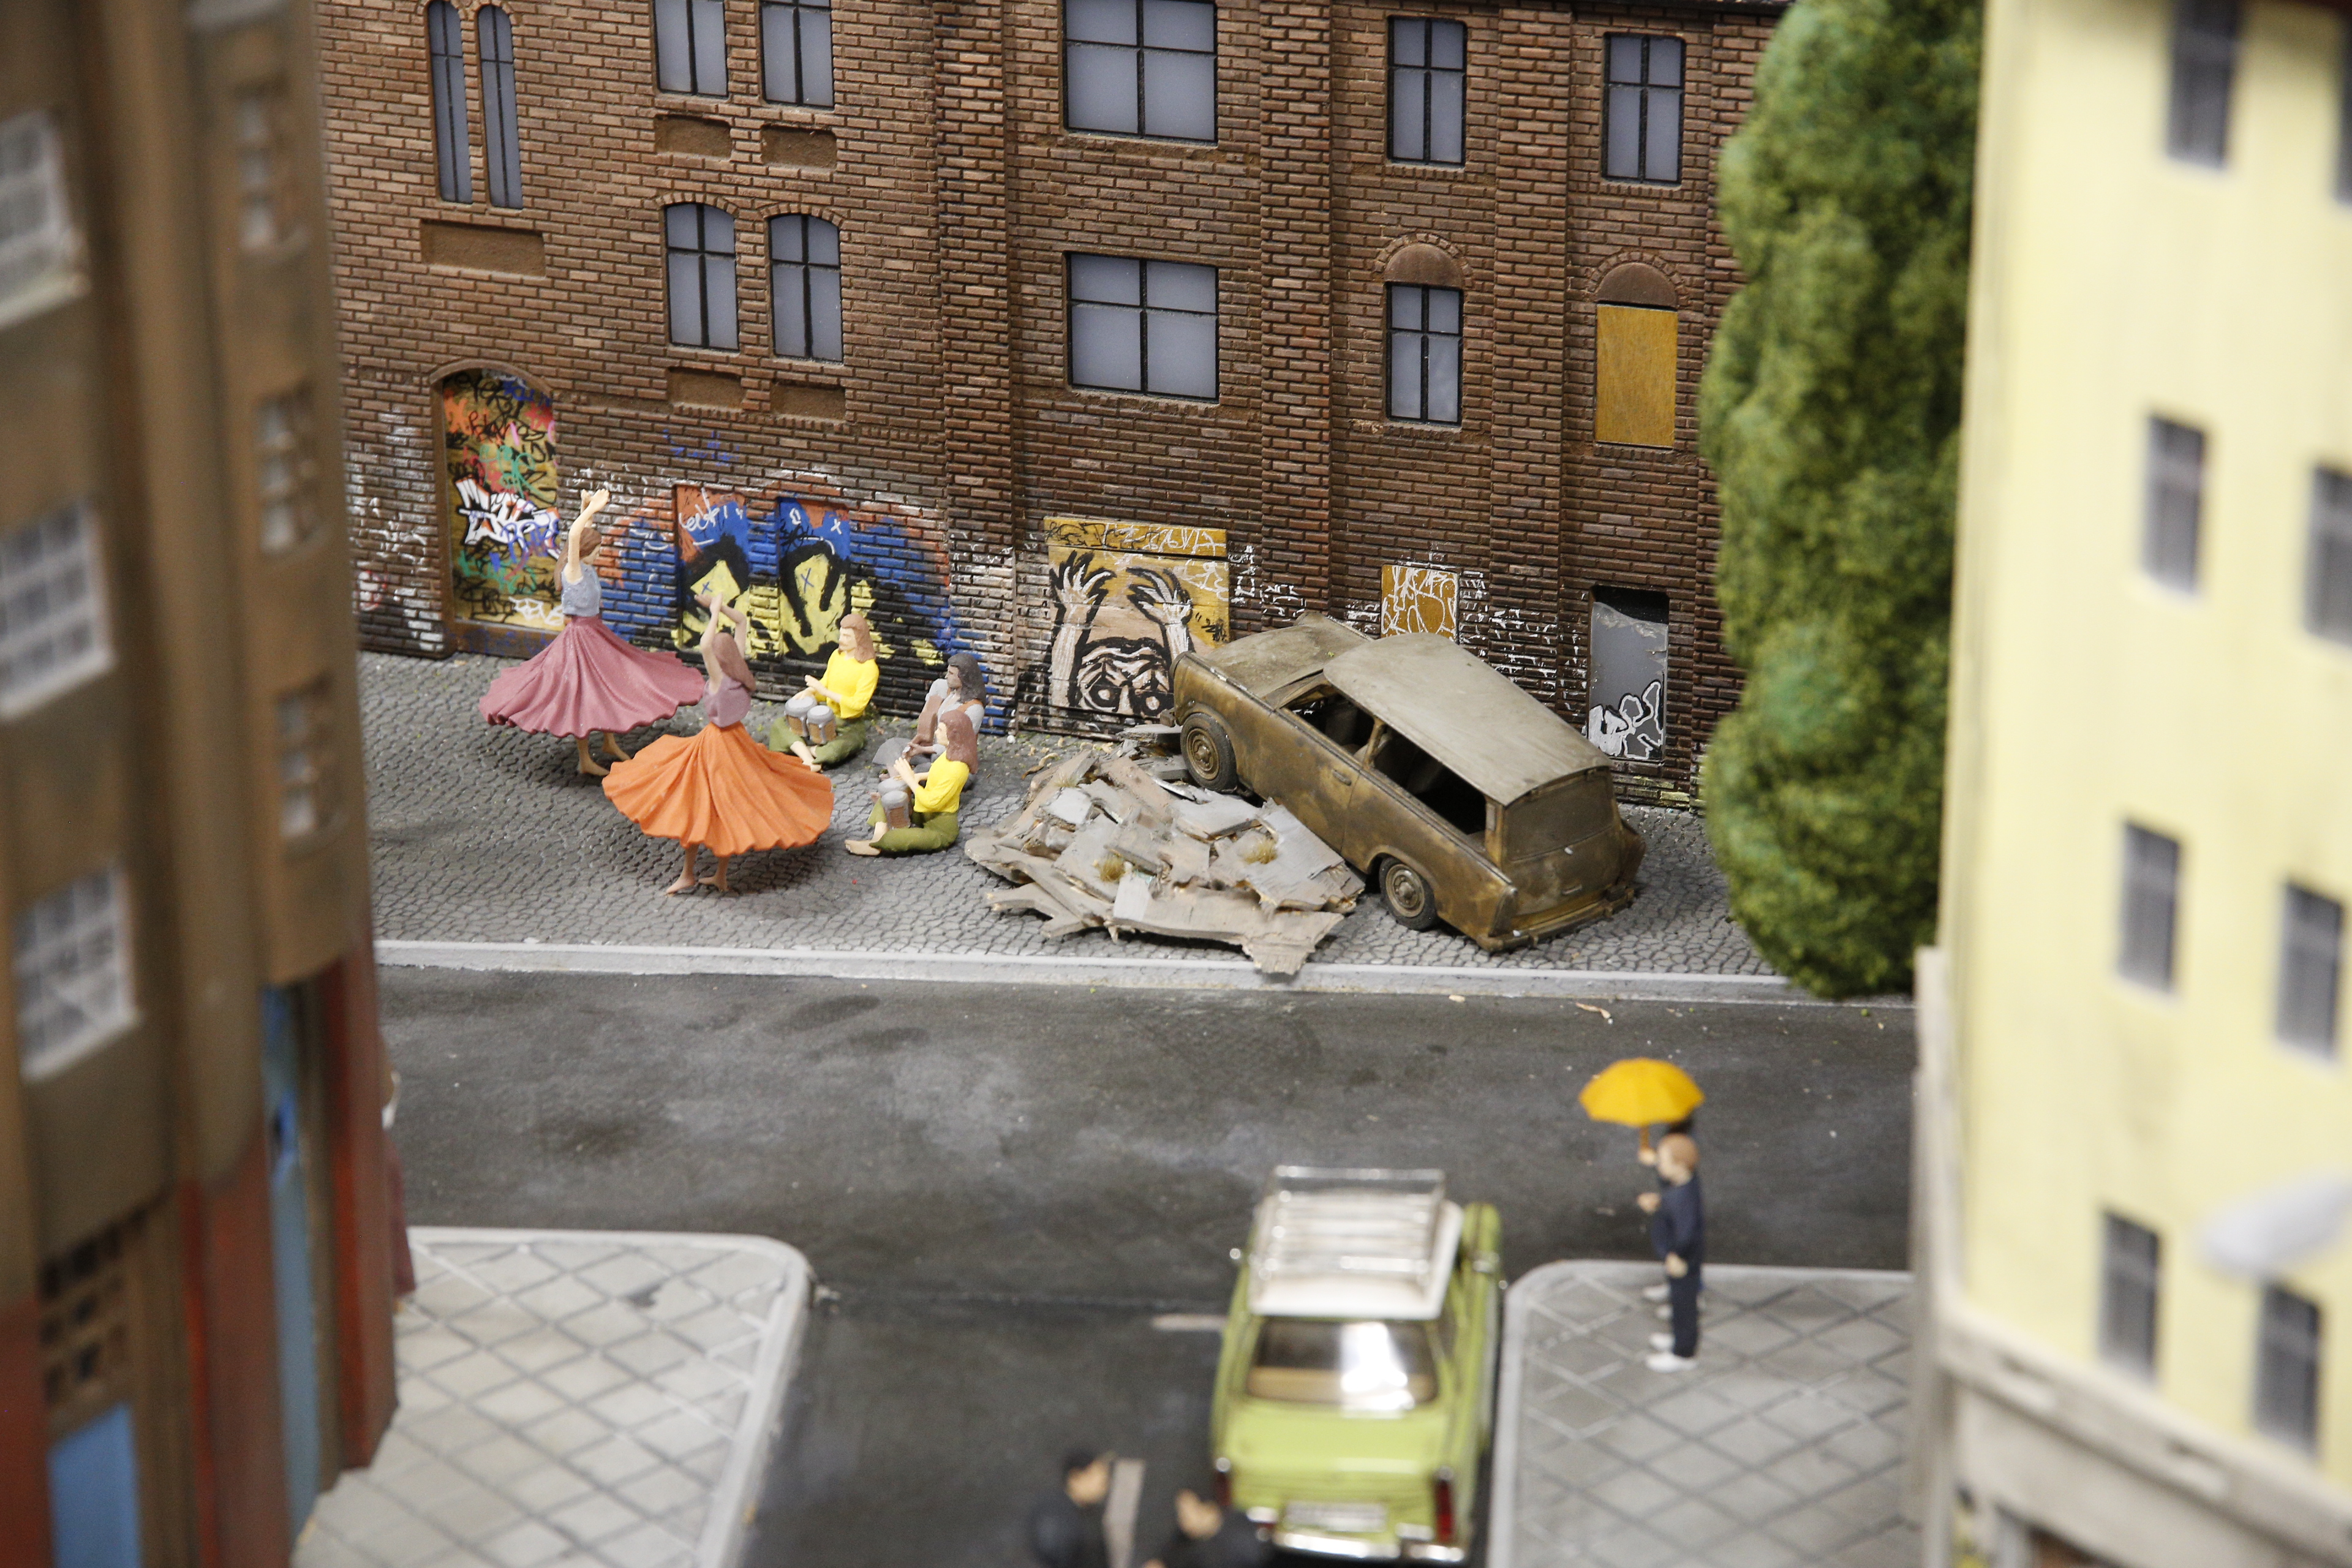 Miniature of People living and dancing in the streets in Westberlin at Little BIG City Berlin